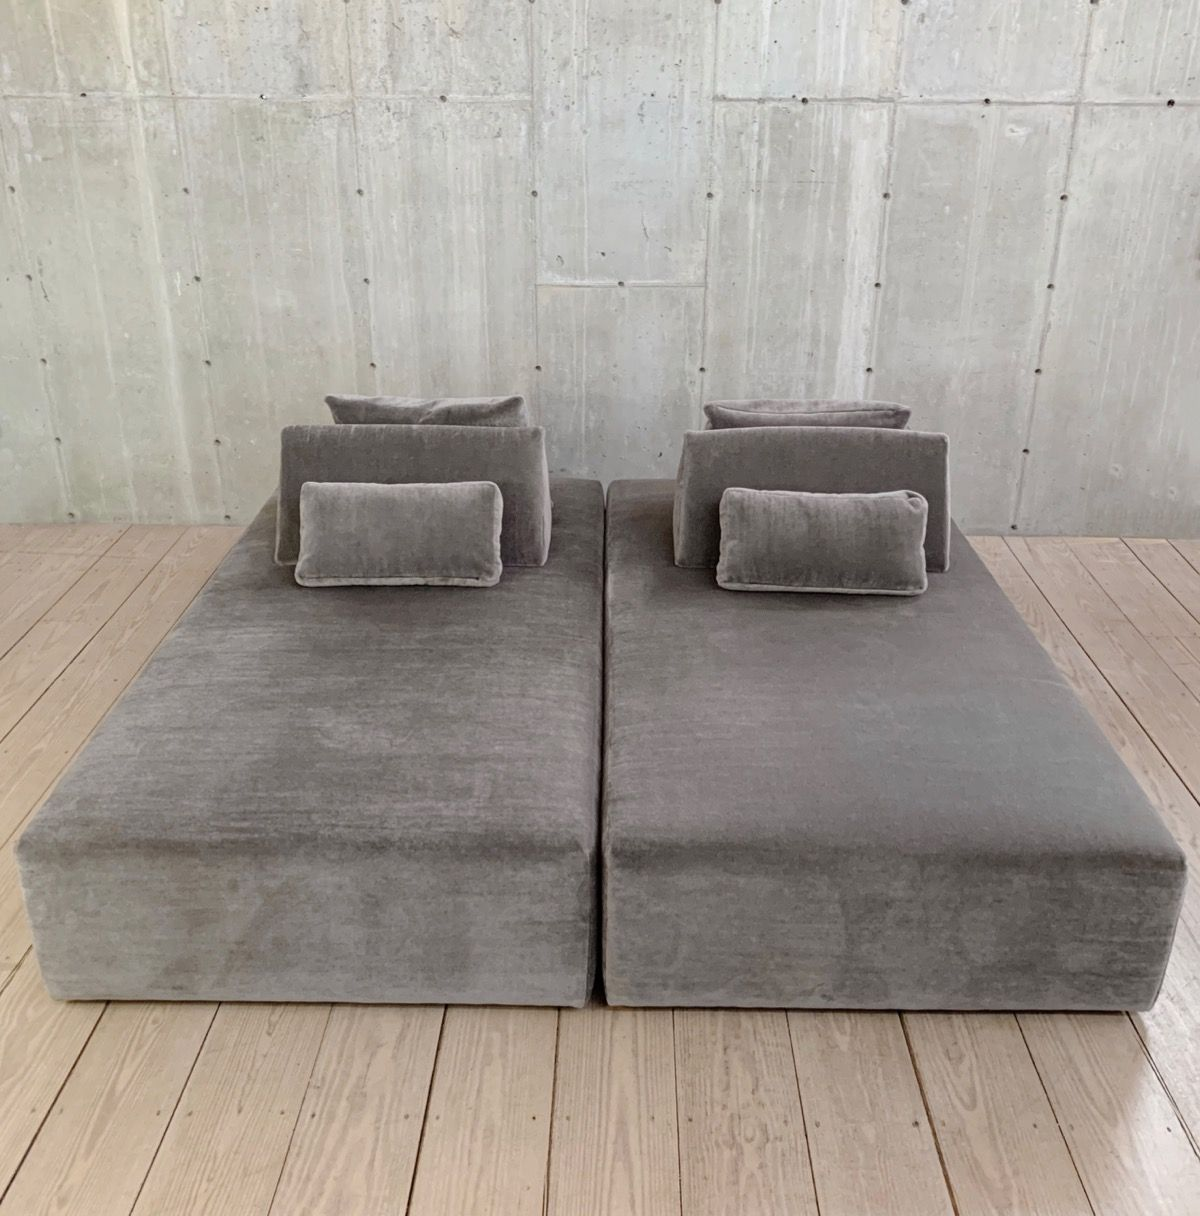 Pair Of Gray Mohair Velvet Daybeds With Movable Wedge Backrest Pillows Rt Facts Kent Ct In 2020 Backrest Pillows Daybed Furniture Design Modern